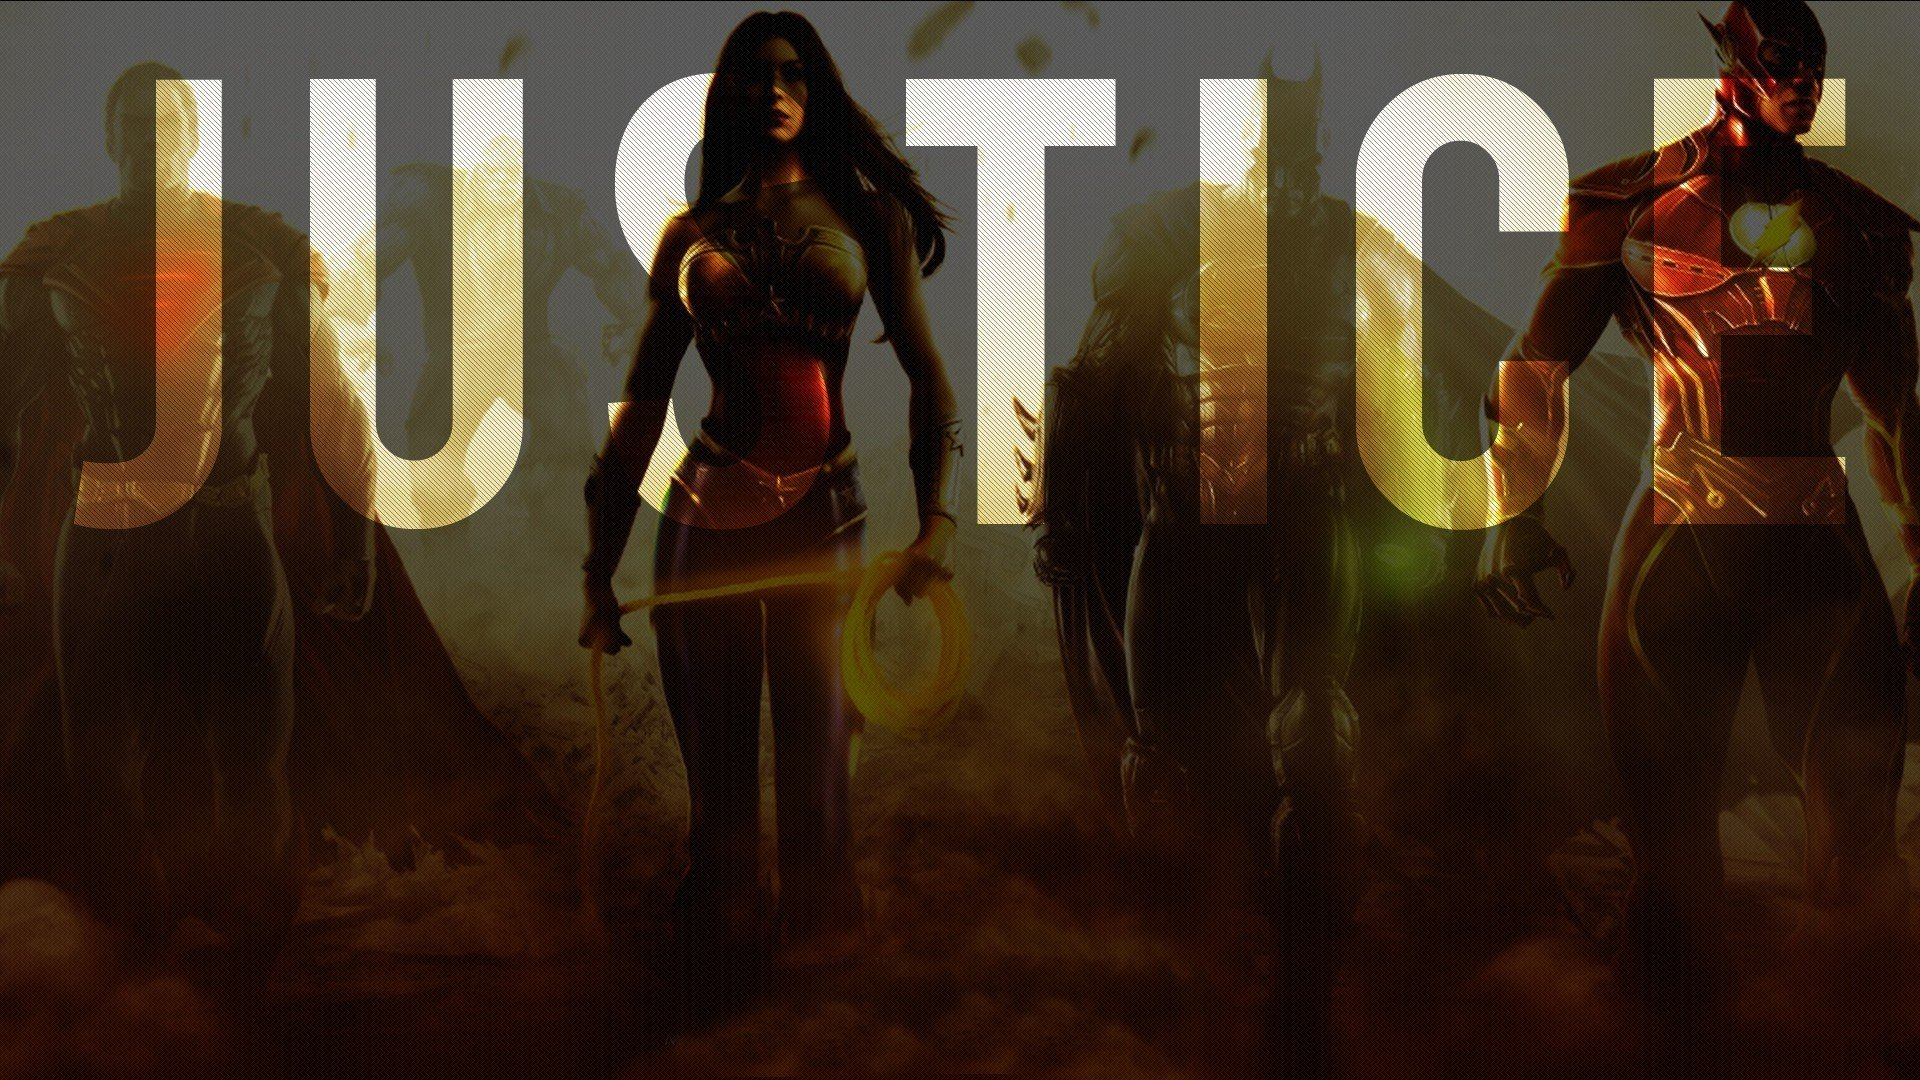 Hd wallpaper justice league - Justice League Hd Wallpapers